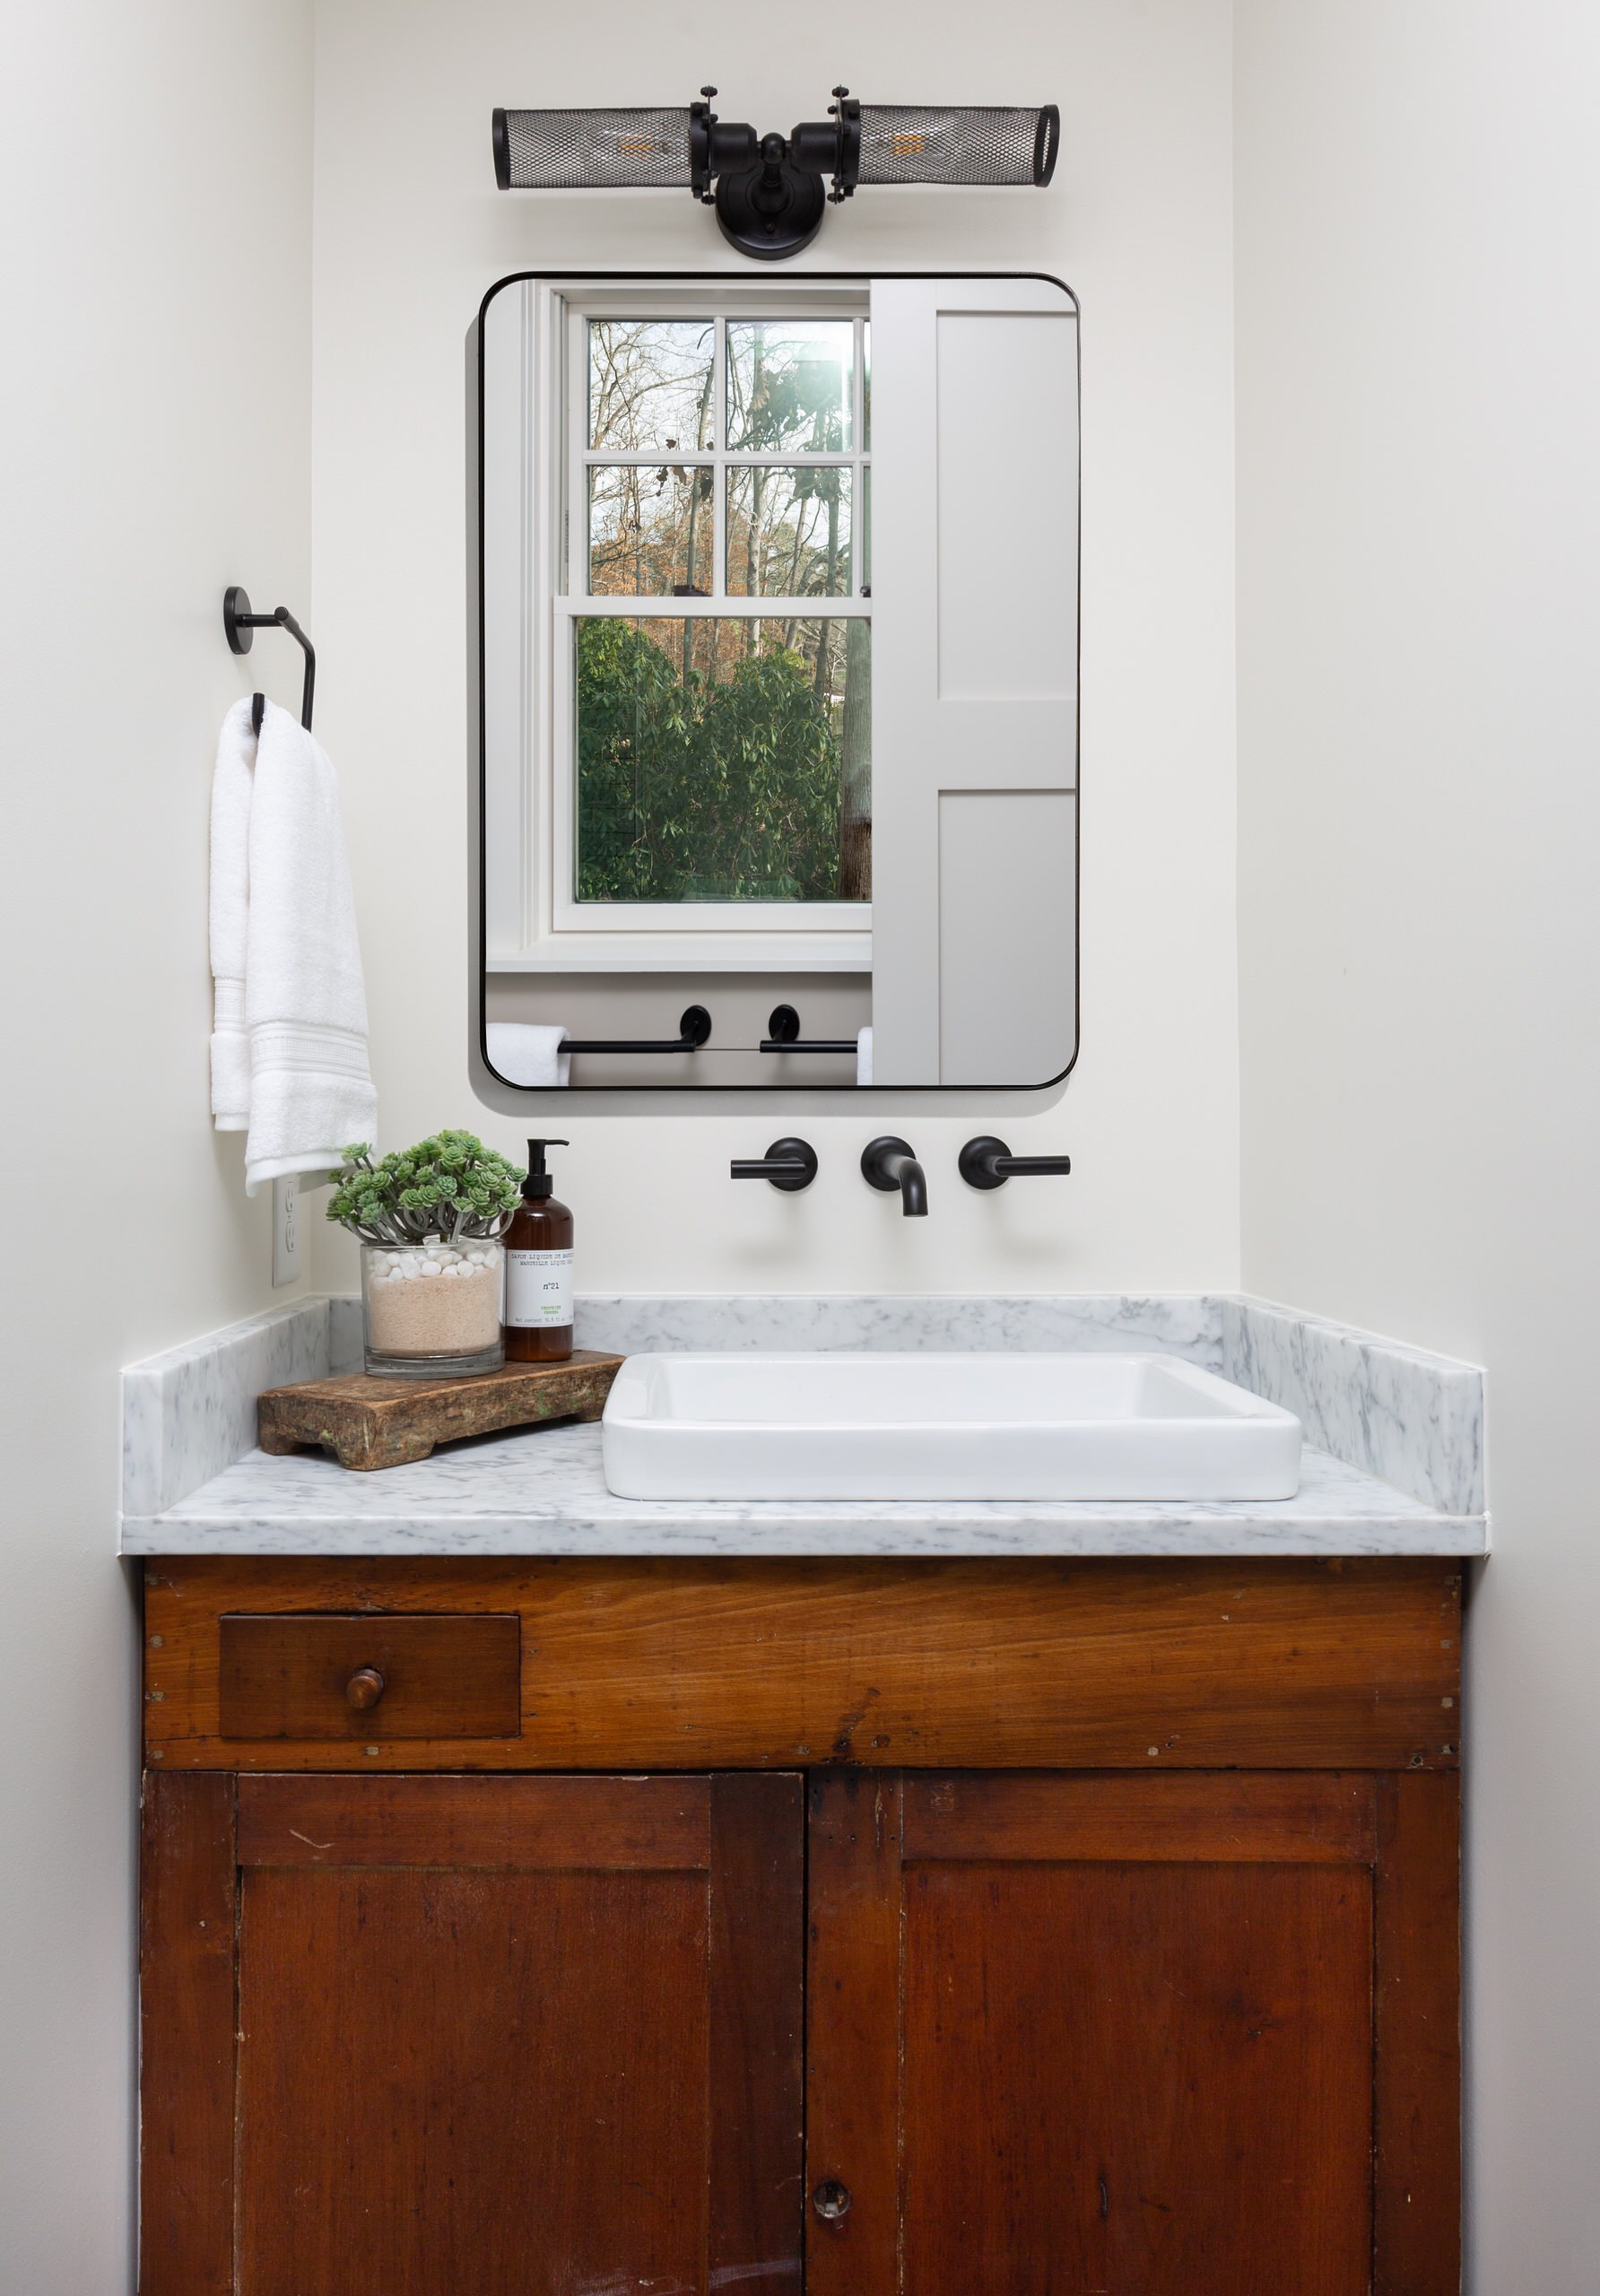 Antique cabinet repurposed to use as the vanity in the master bathroom